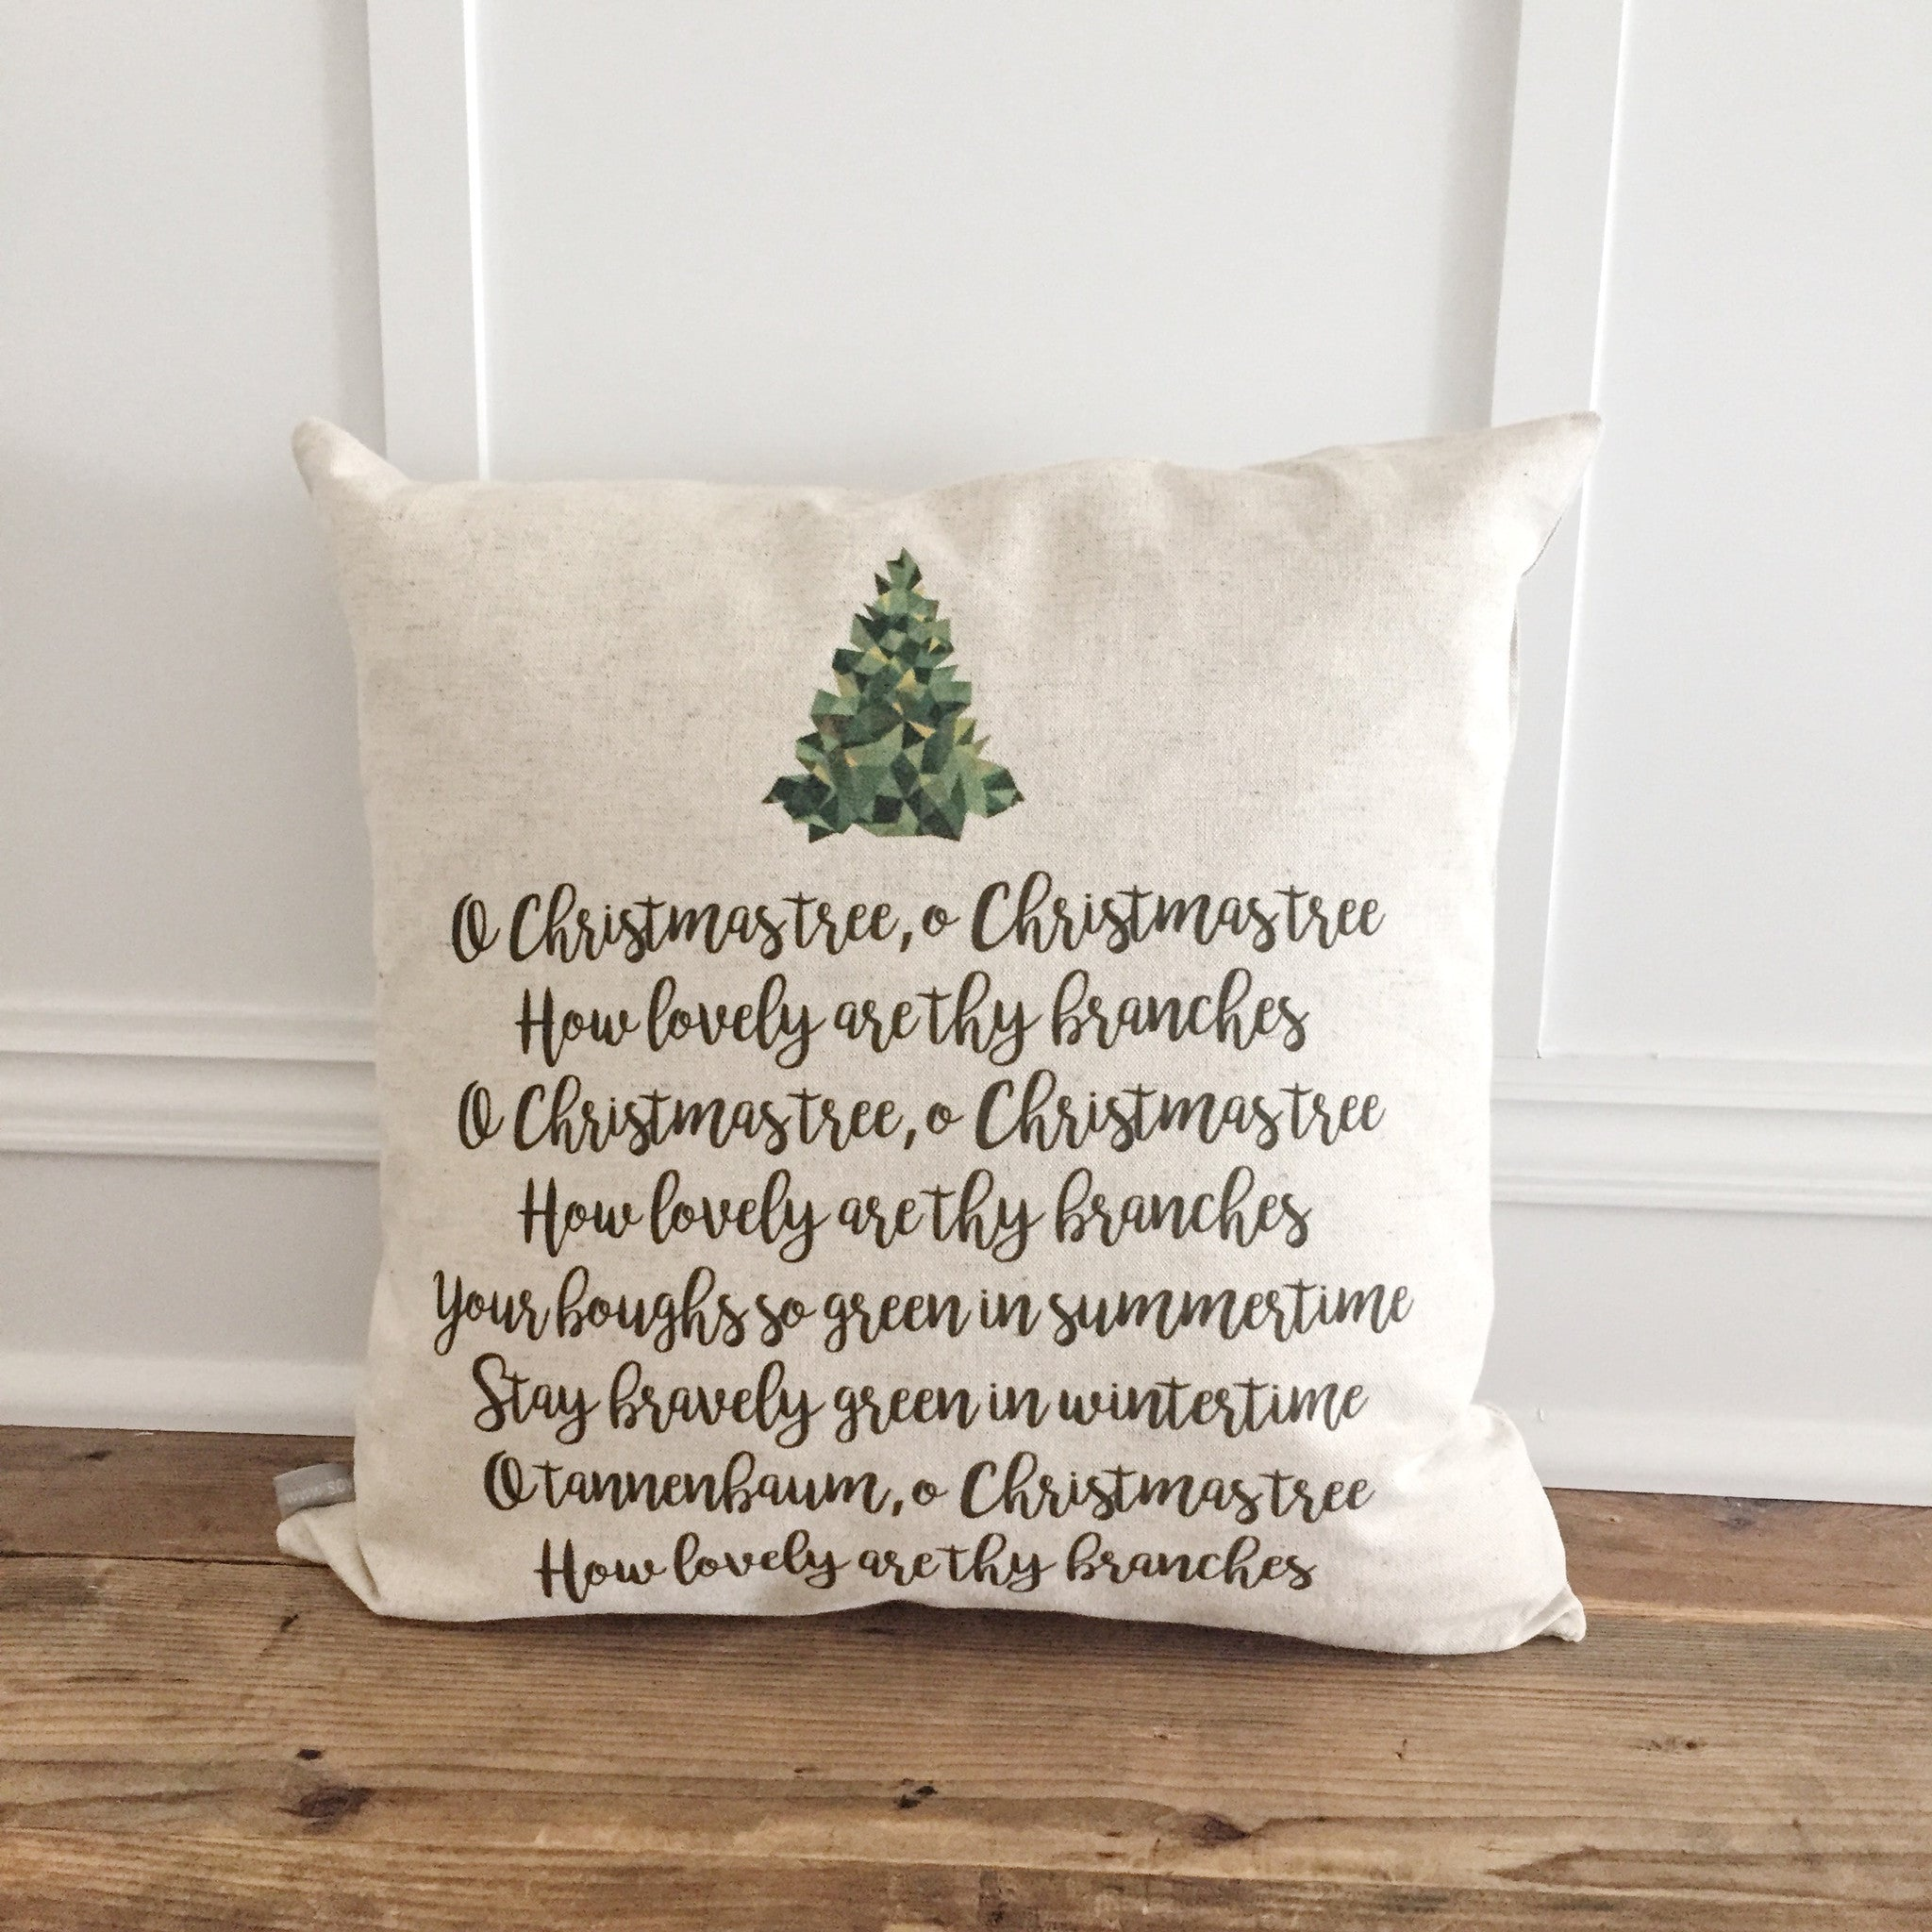 o christmas tree lyrics pillow cover - Oh Christmas Tree How Lovely Are Your Branches Lyrics